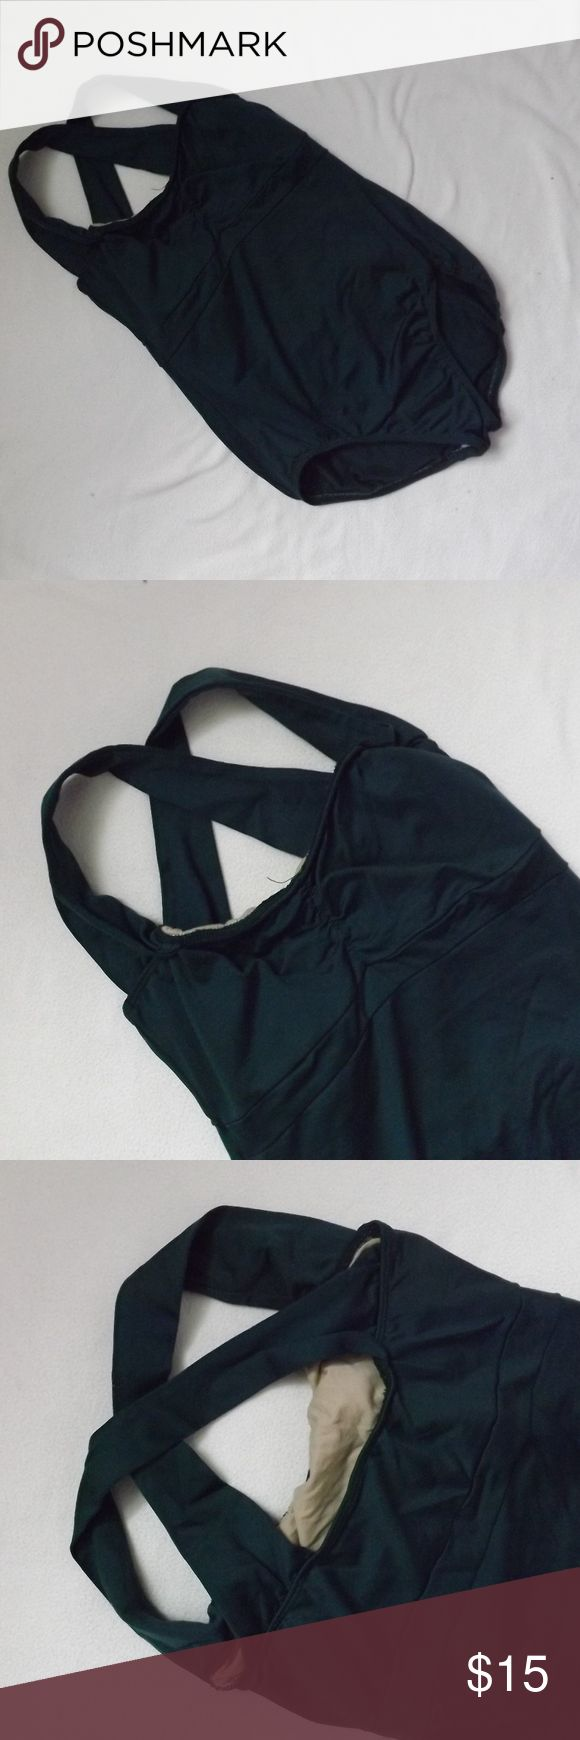 Green Leotard it looks black in the picture, but it is a forest green color Capezio Intimates & Sleepwear Shapewear